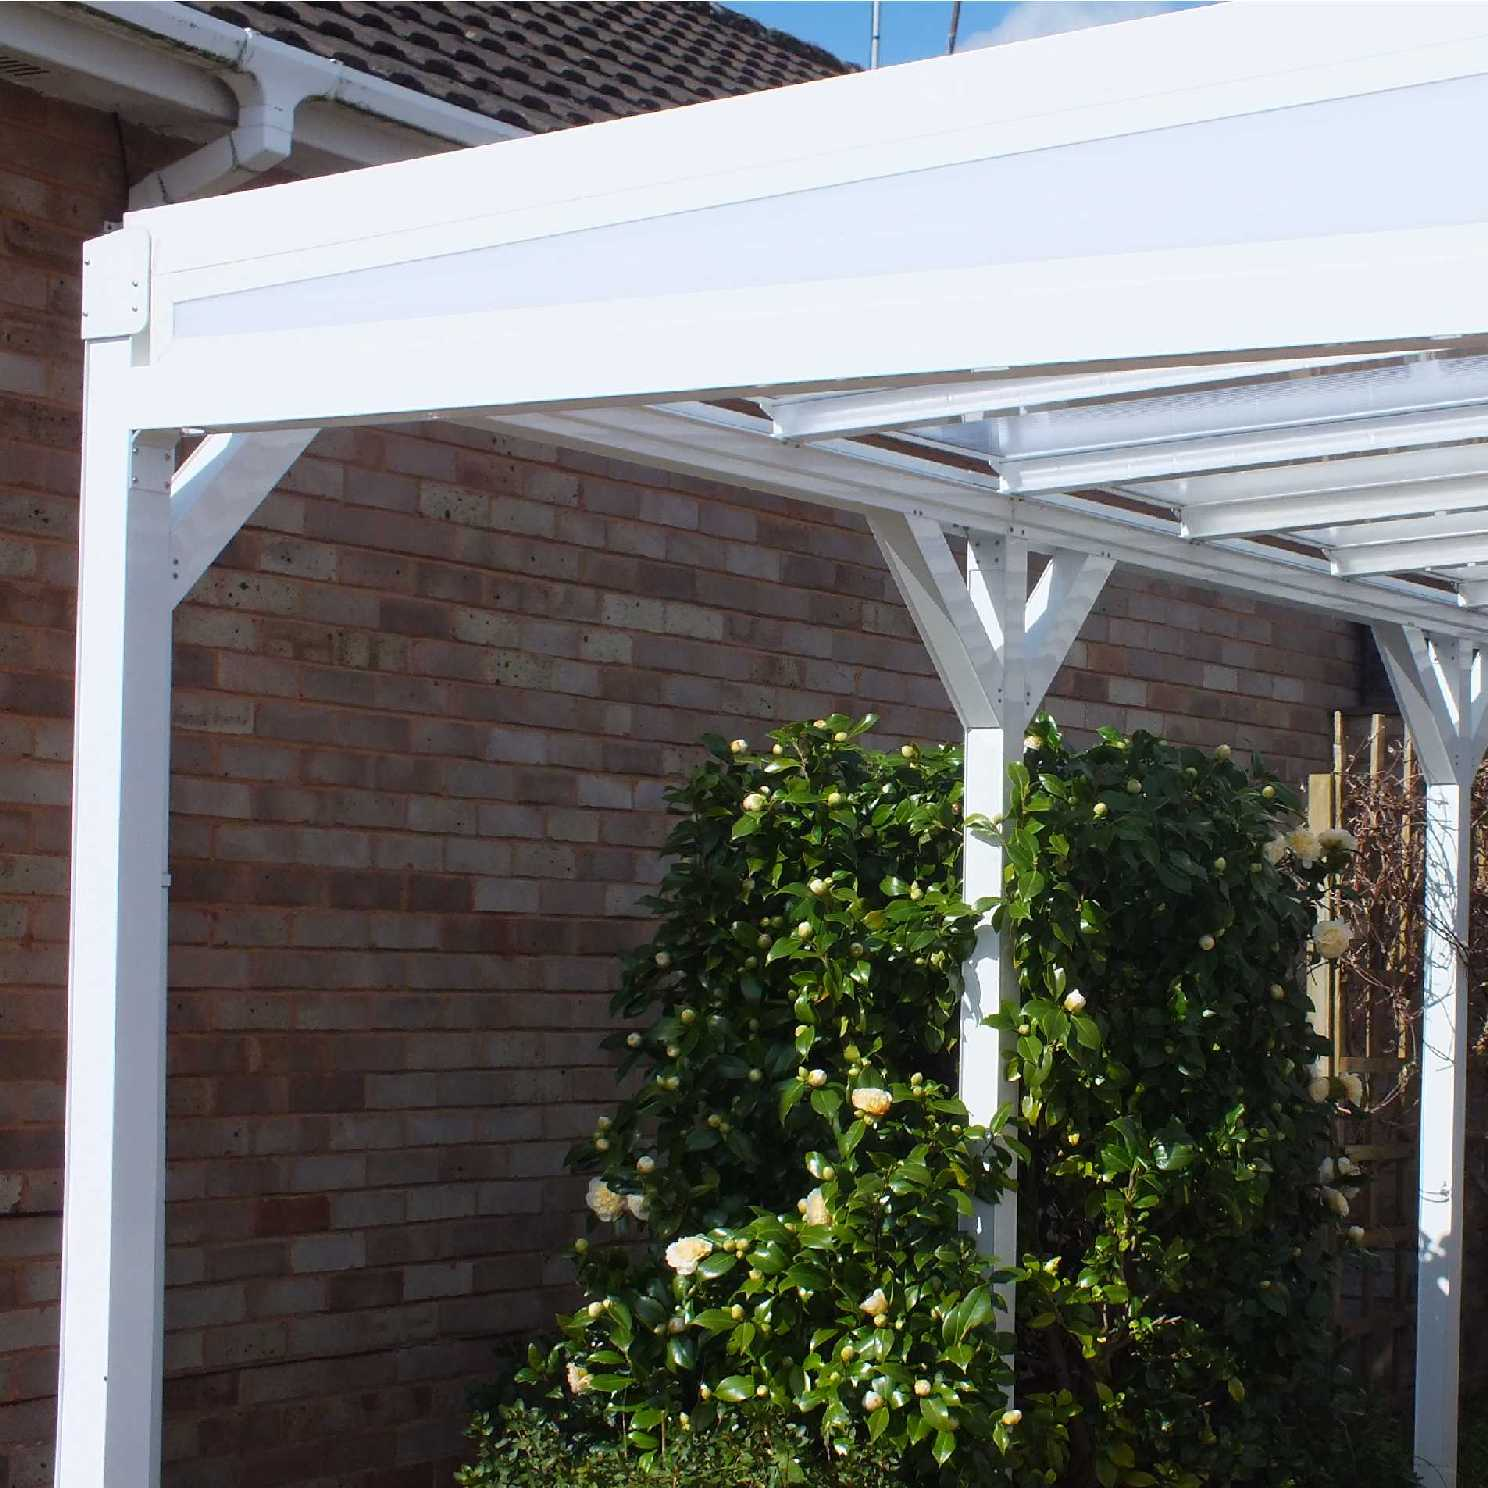 Omega Smart White Lean-To Canopy with 16mm Polycarbonate Glazing - 6.0m (W) x 4.0m (P), (3) Supporting Posts from Omega Build